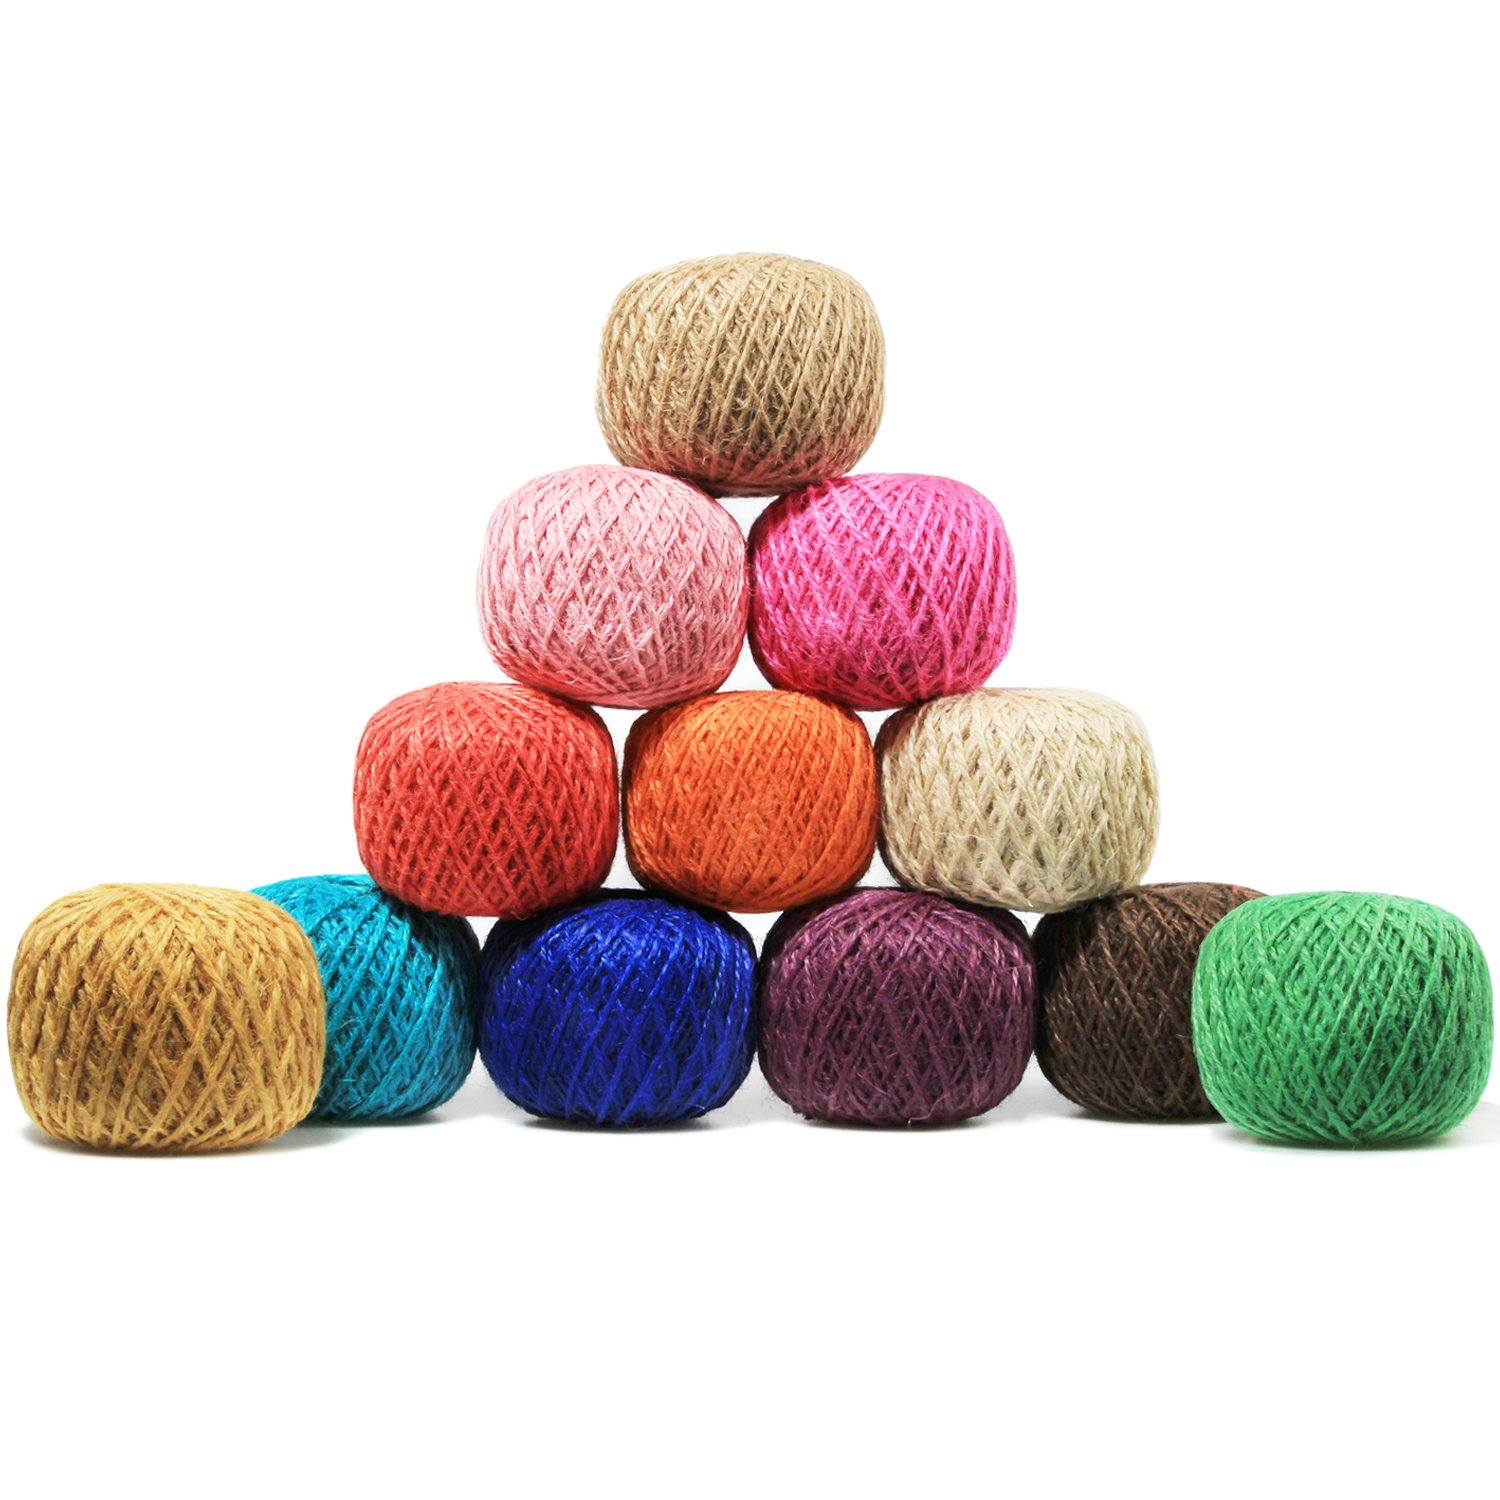 Digiroot 12 Packs Natural Jute Twine Perfect for Gift Packaging, Gardening Applications, Arts and Crafts project and home decorations - Pack of 12rolls , 328ft/roll